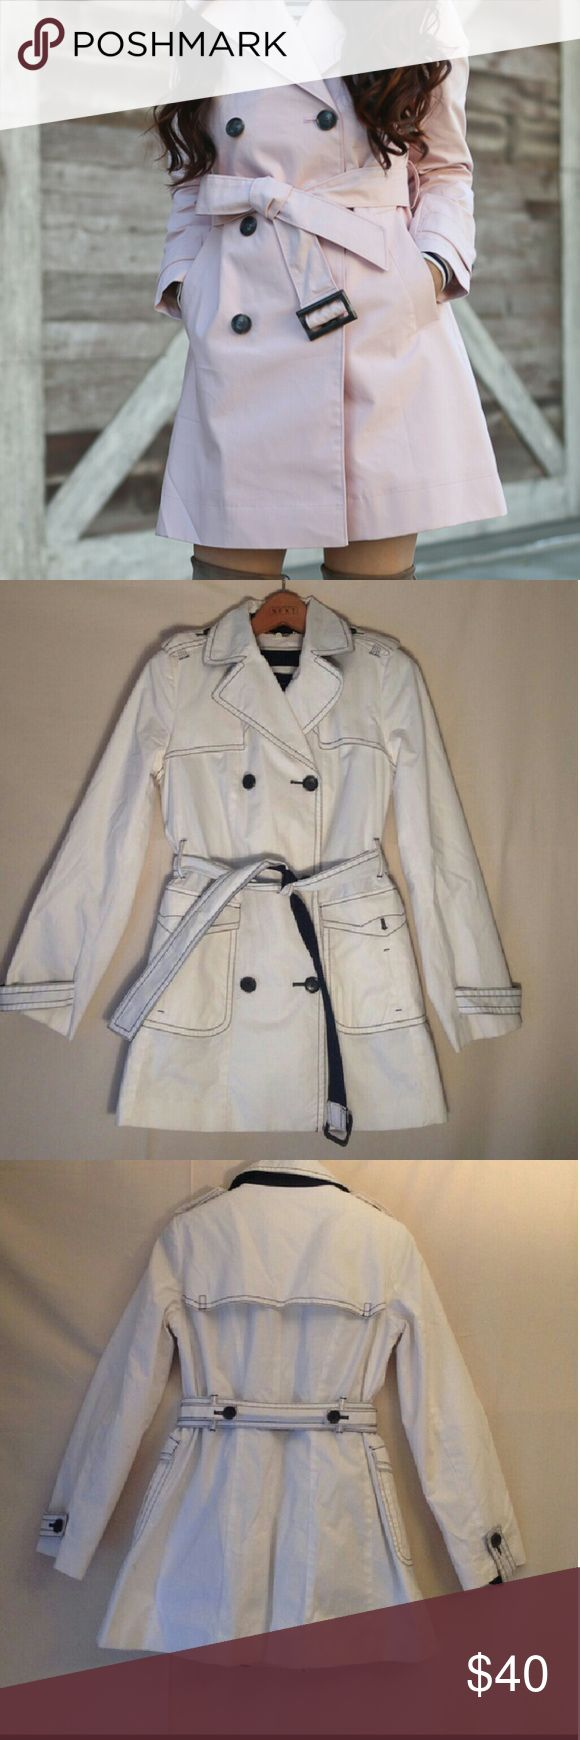 XMAS SALE 🎁EUC White Banana Republic trench coat! Perfect condition Banana Republic belted trench coat! Belt is removable. Also comes with removable quilted polyester filled inside! Adorable coat! Banana Republic Jackets & Coats Trench Coats